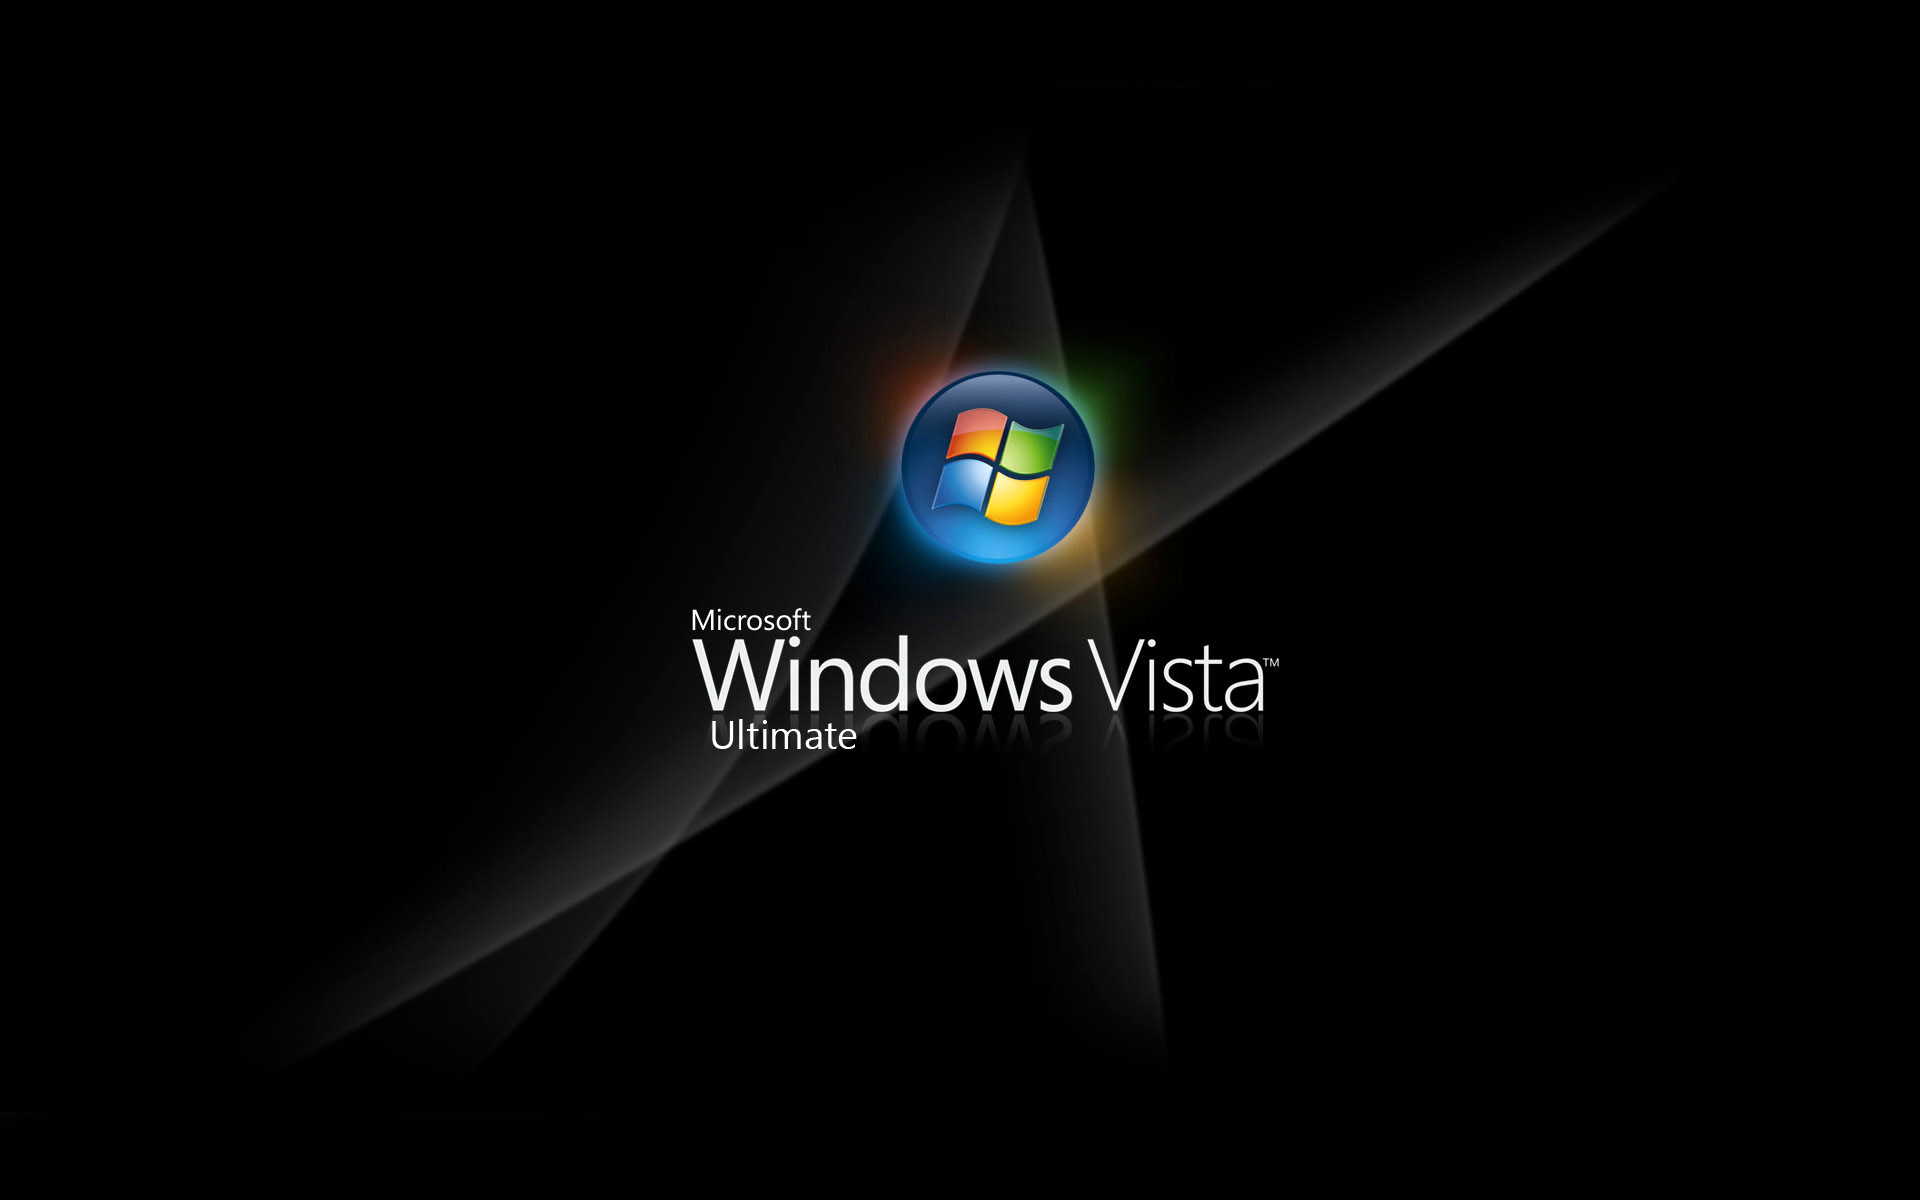 1920x1200 Windows Vista Logo